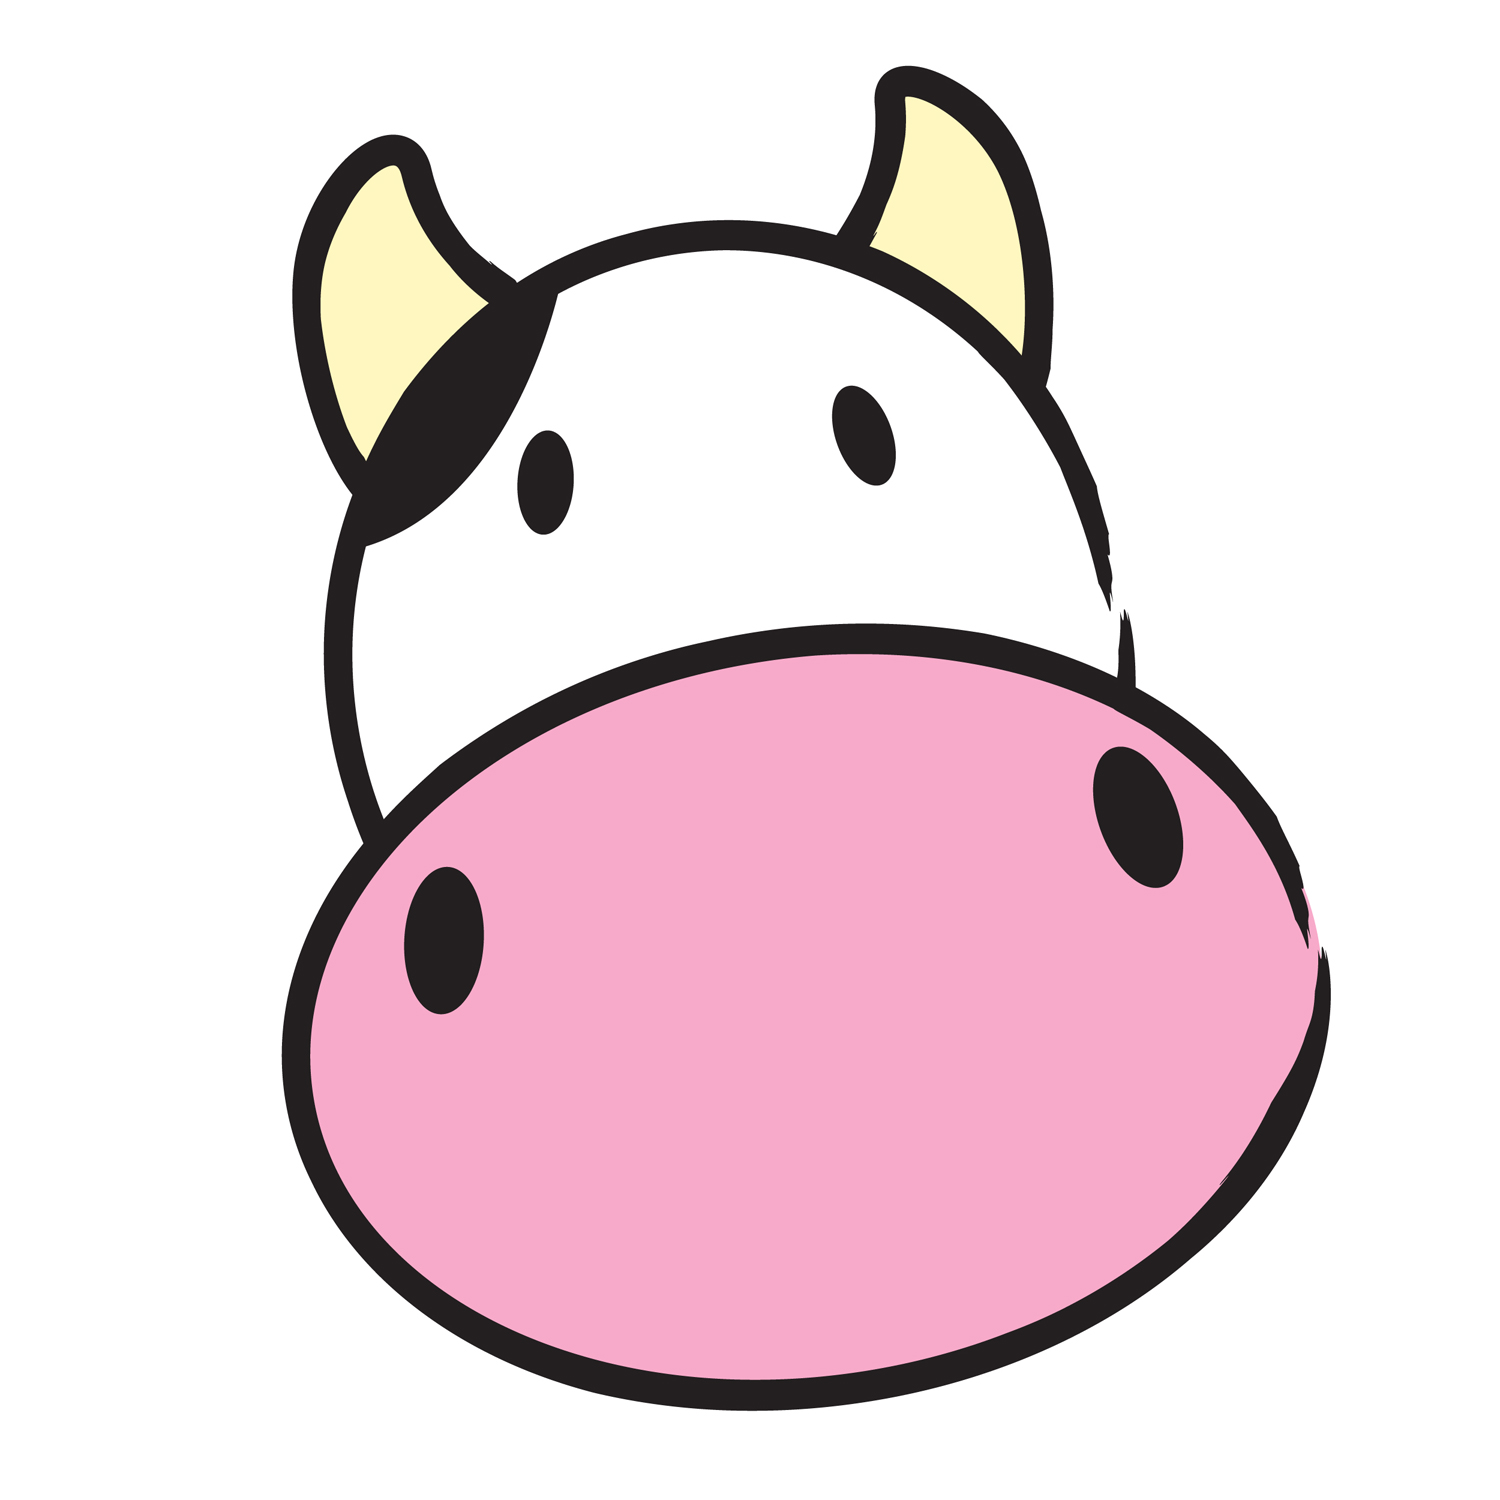 Free cliparts download on. Cow clip art face transparent library